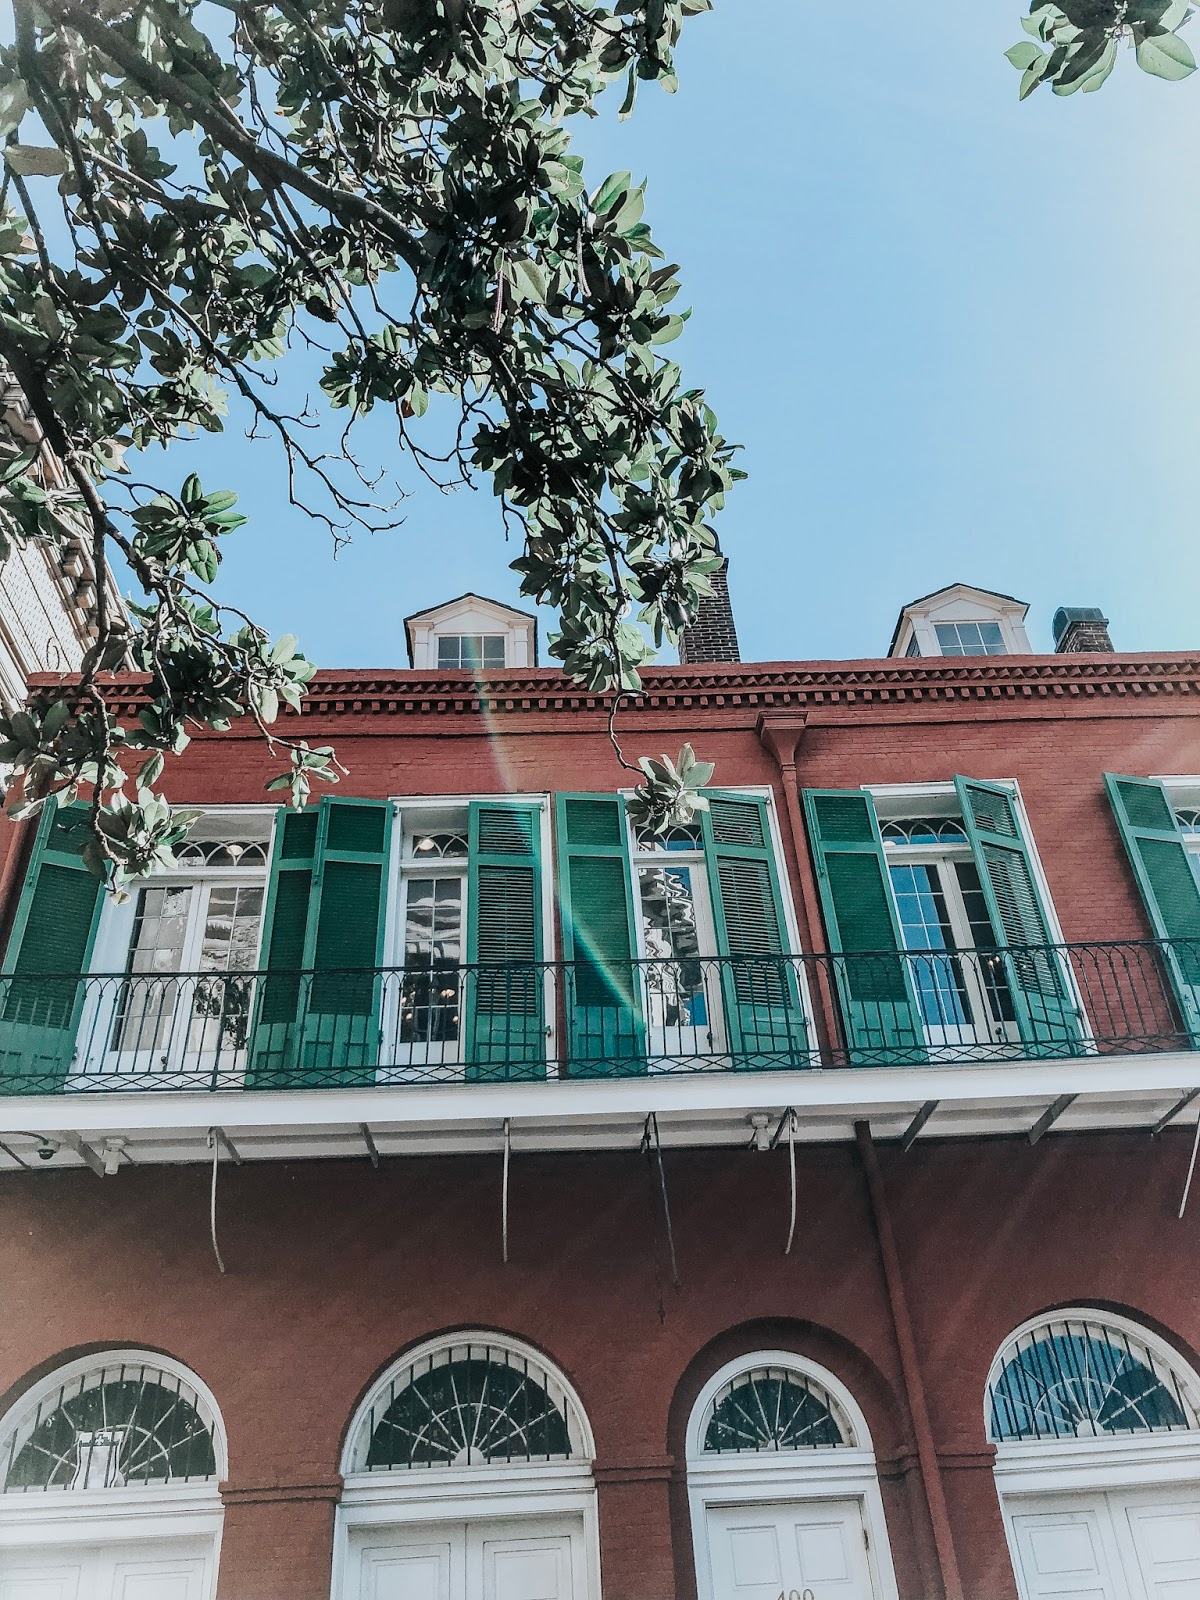 Buildings in the  French Quarter of New Orleans